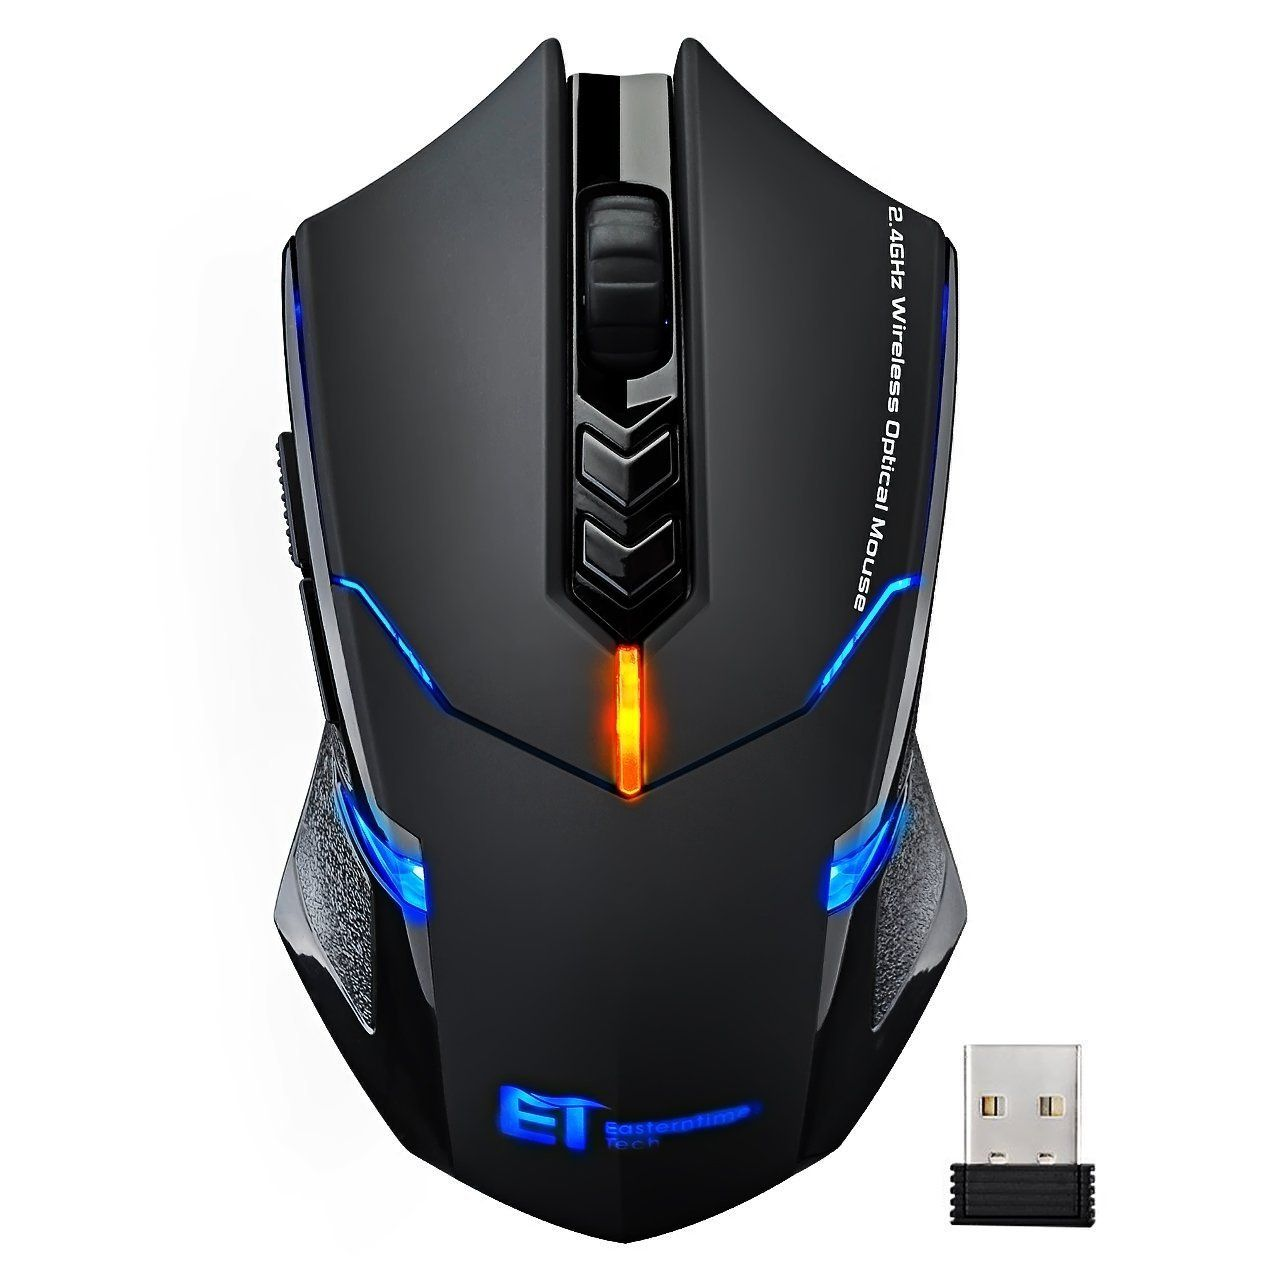 VicTsing Wireless Gaming Mouse Breathing Backlit Programmable Mice 2400 DPI